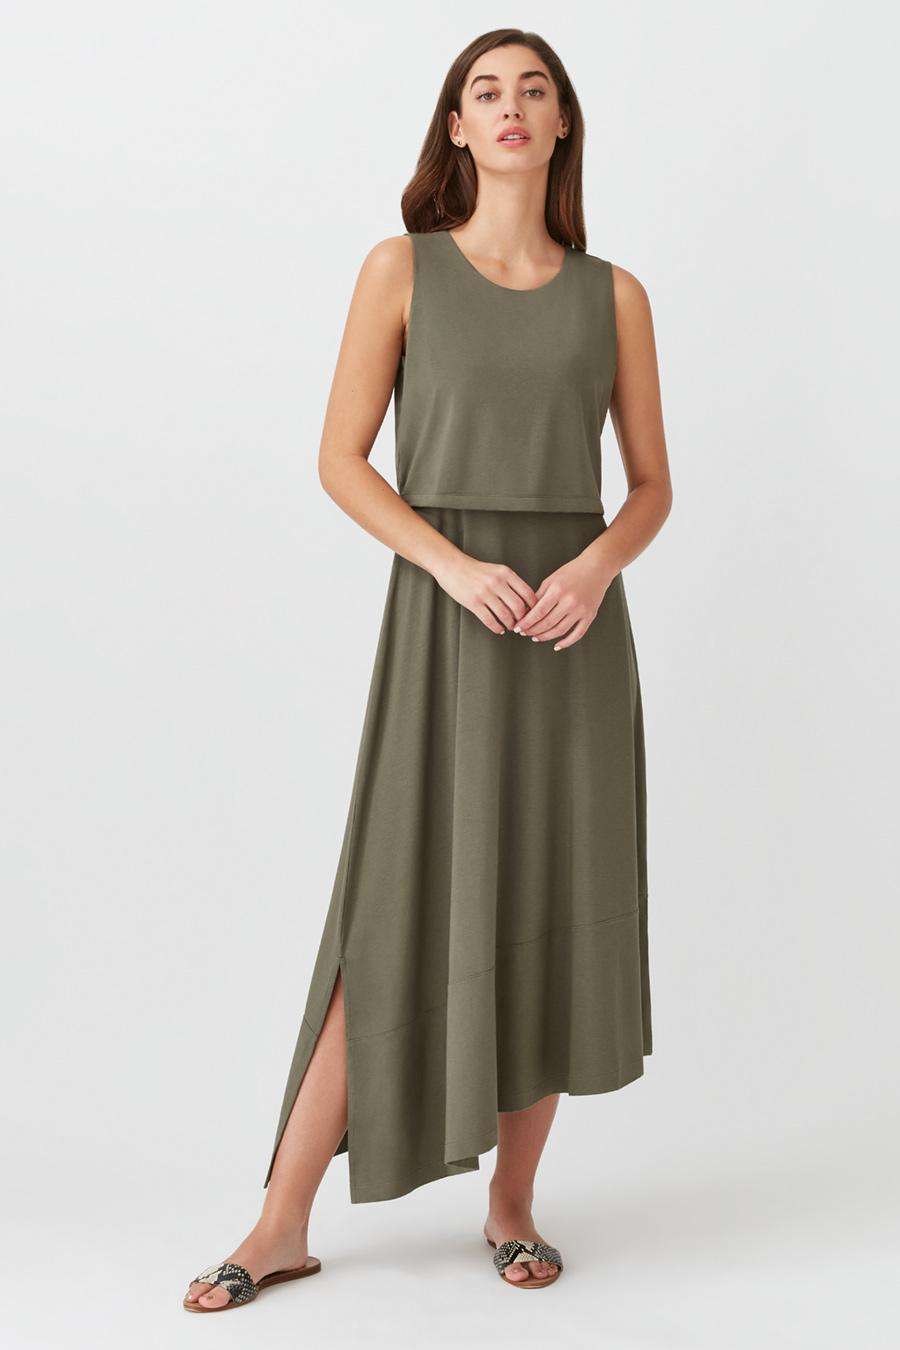 Women's Asymmetrical Overlay Dress in Olive | Size: Small | Organic Pima Cotton by Cuyana 1